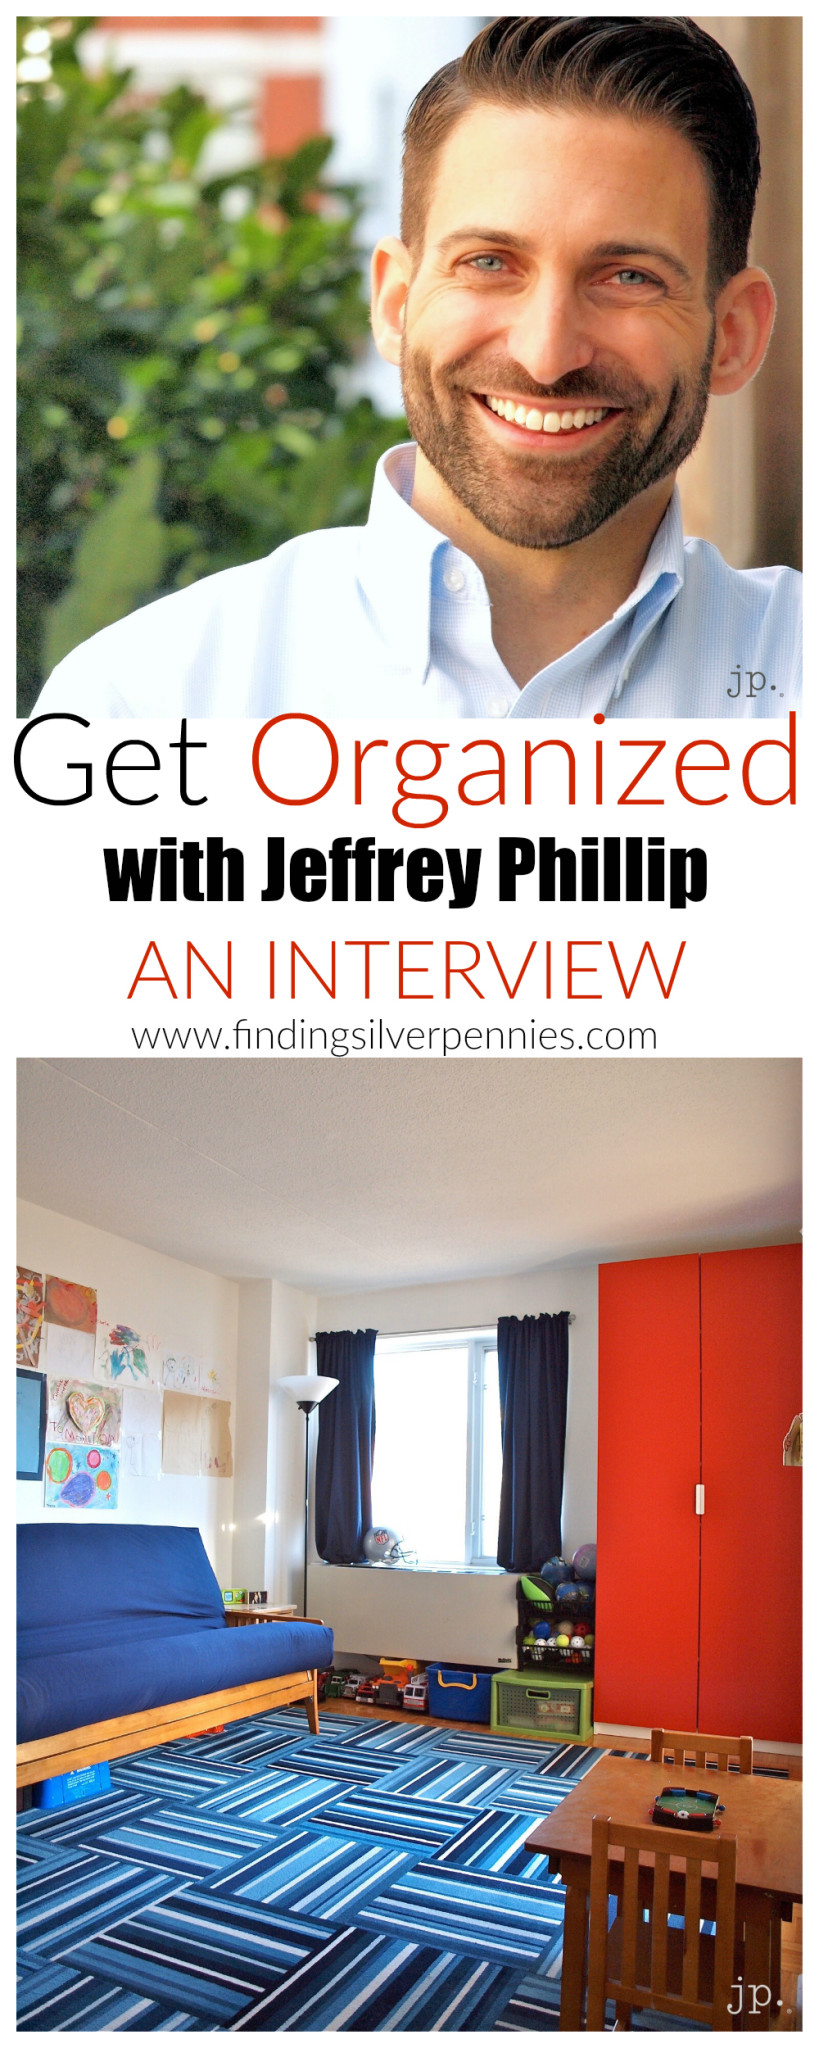 Get Organized Tips for Declutter and Organizing Your Life